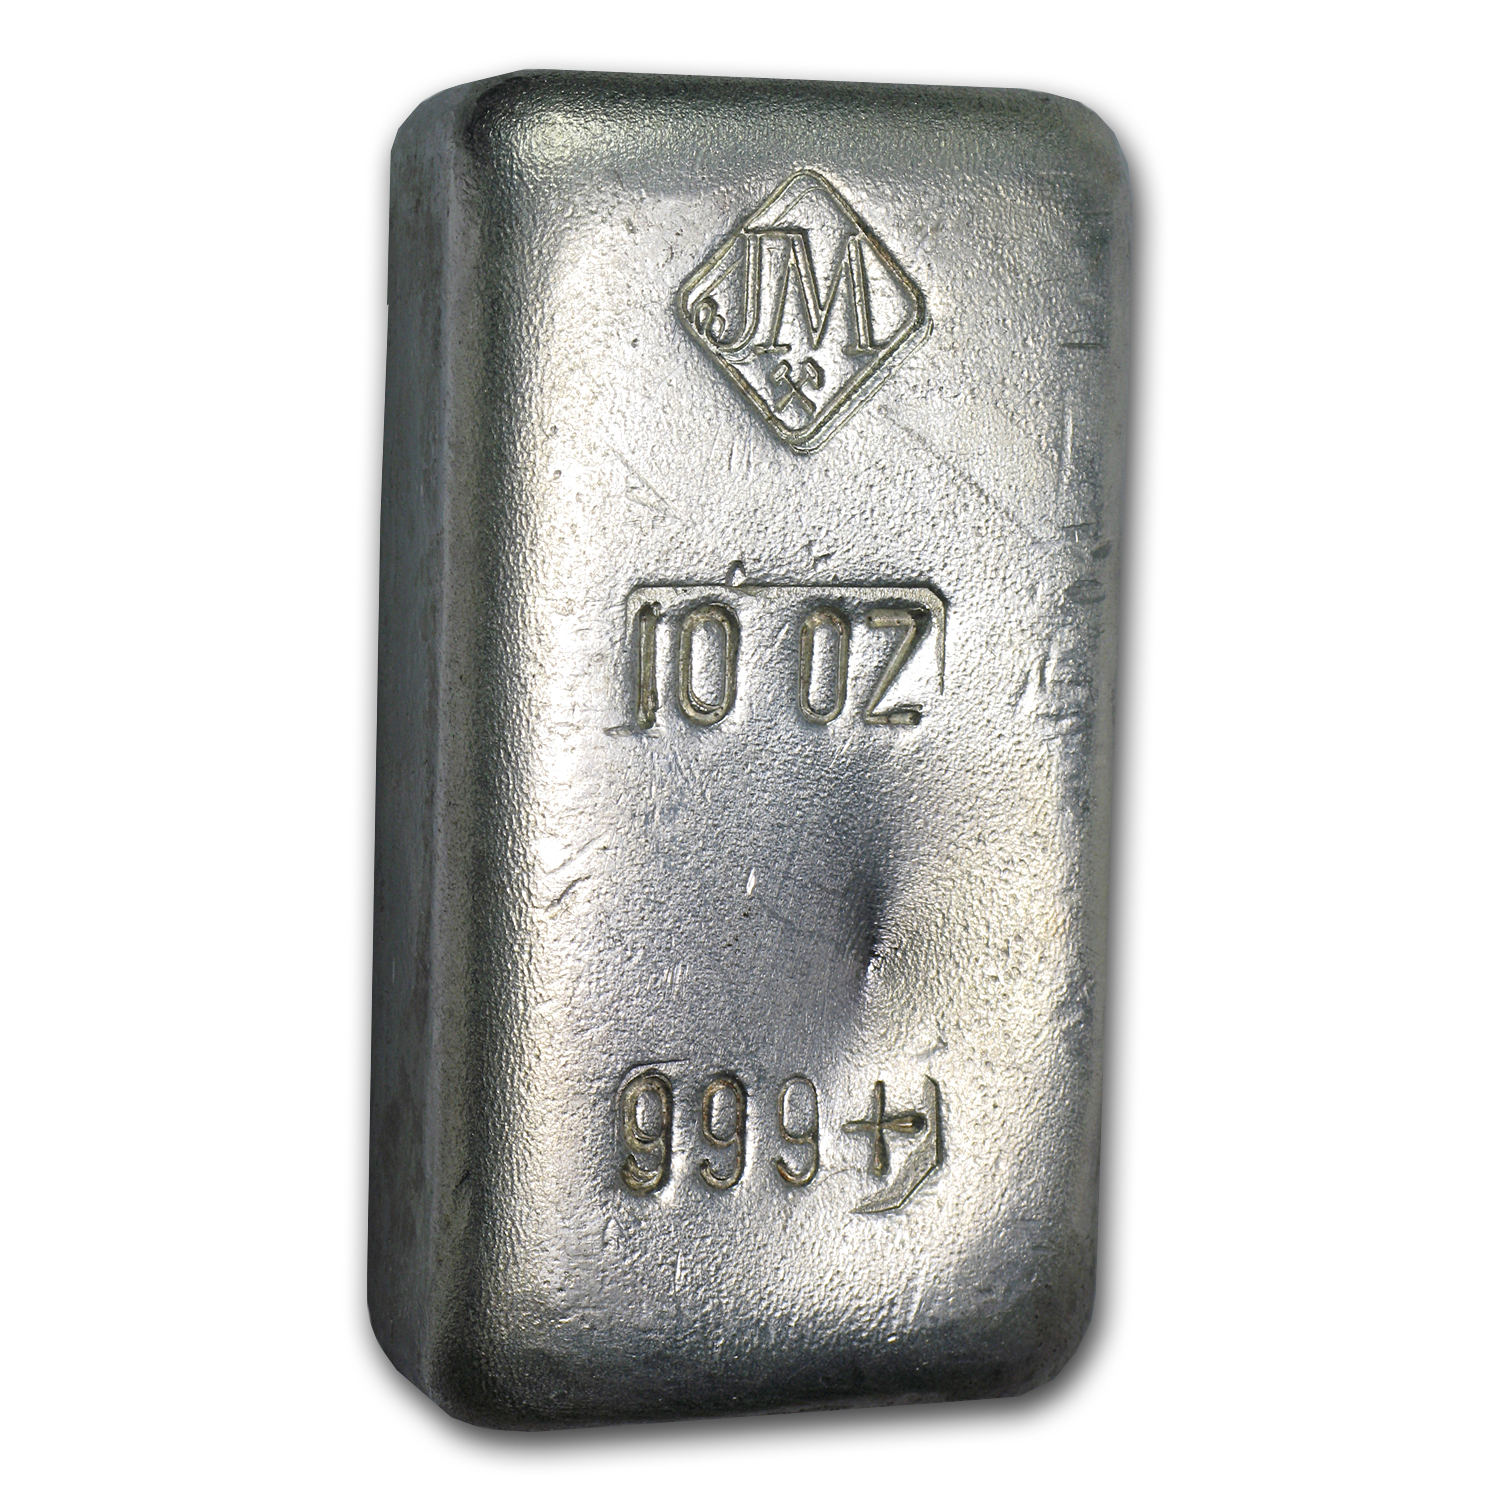 10 oz Silver Bar - Johnson Matthey (Poured)